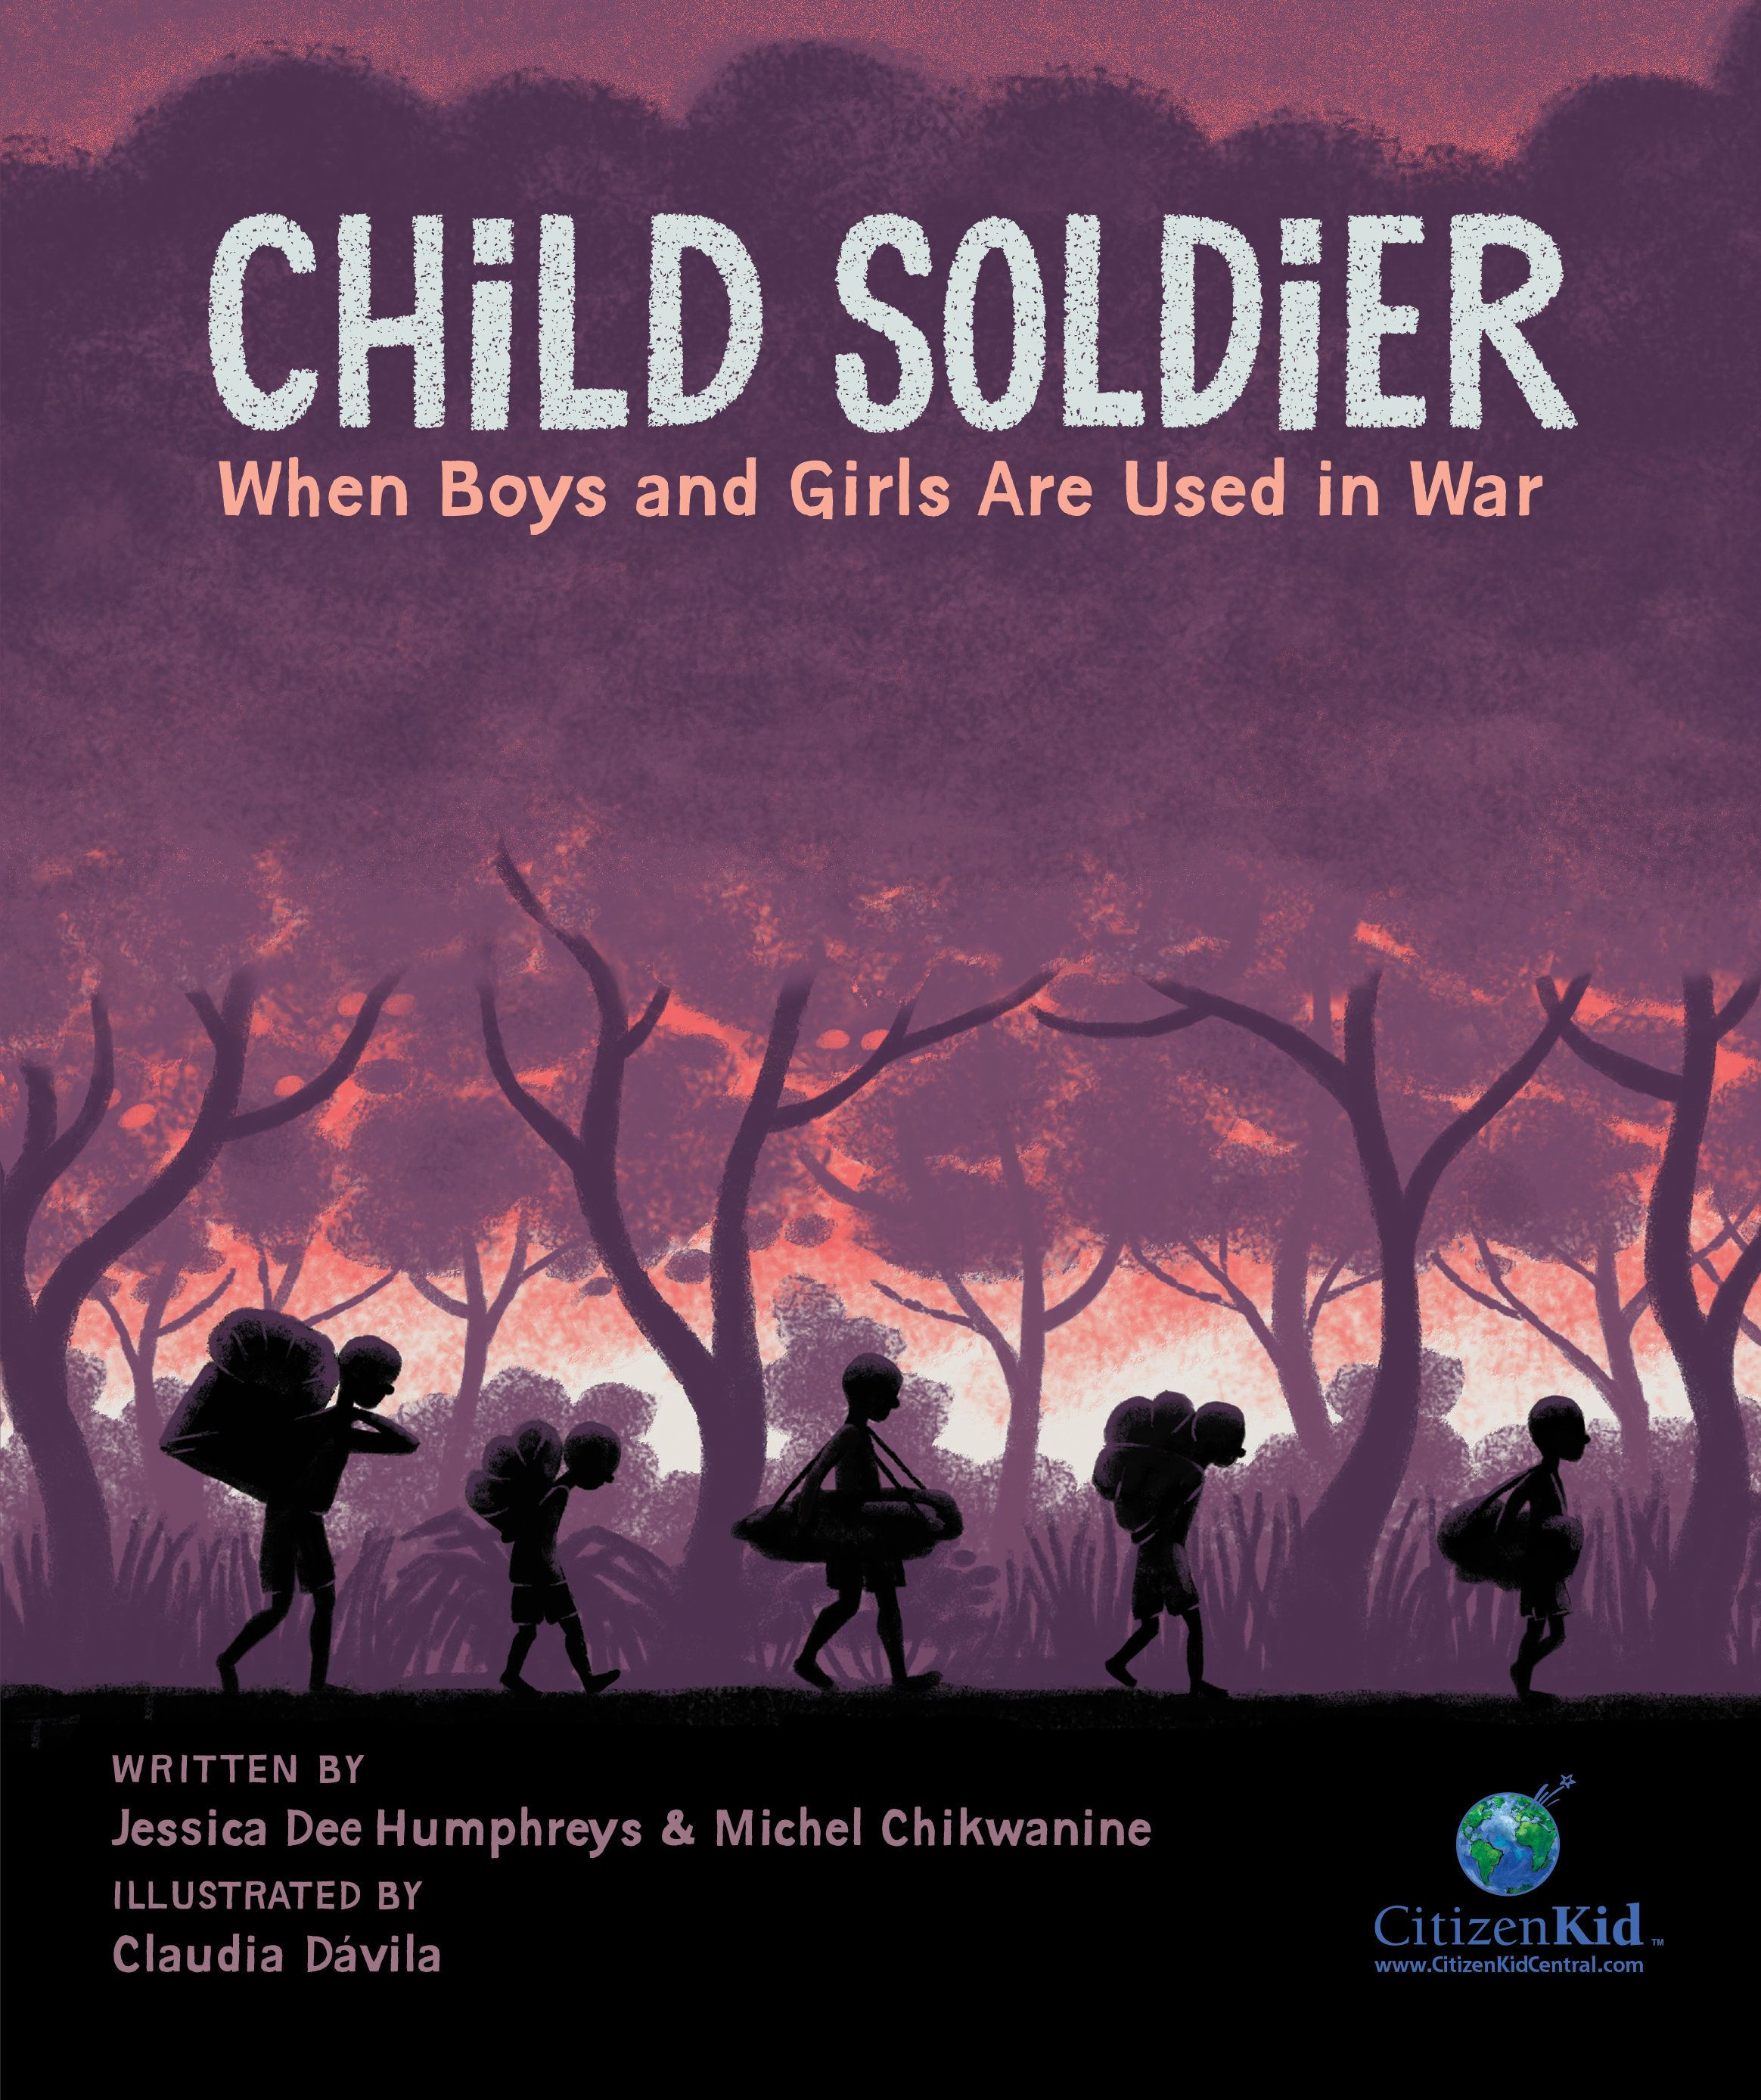 Material from Child Solider: When Boys and Girls Are Used in War used by permission of Kids Can Press. Text (c) 2015 Jessica Dee Humphreys and Michel Chikwanine. Illustrations (c) 2015 Claudia Dávila.